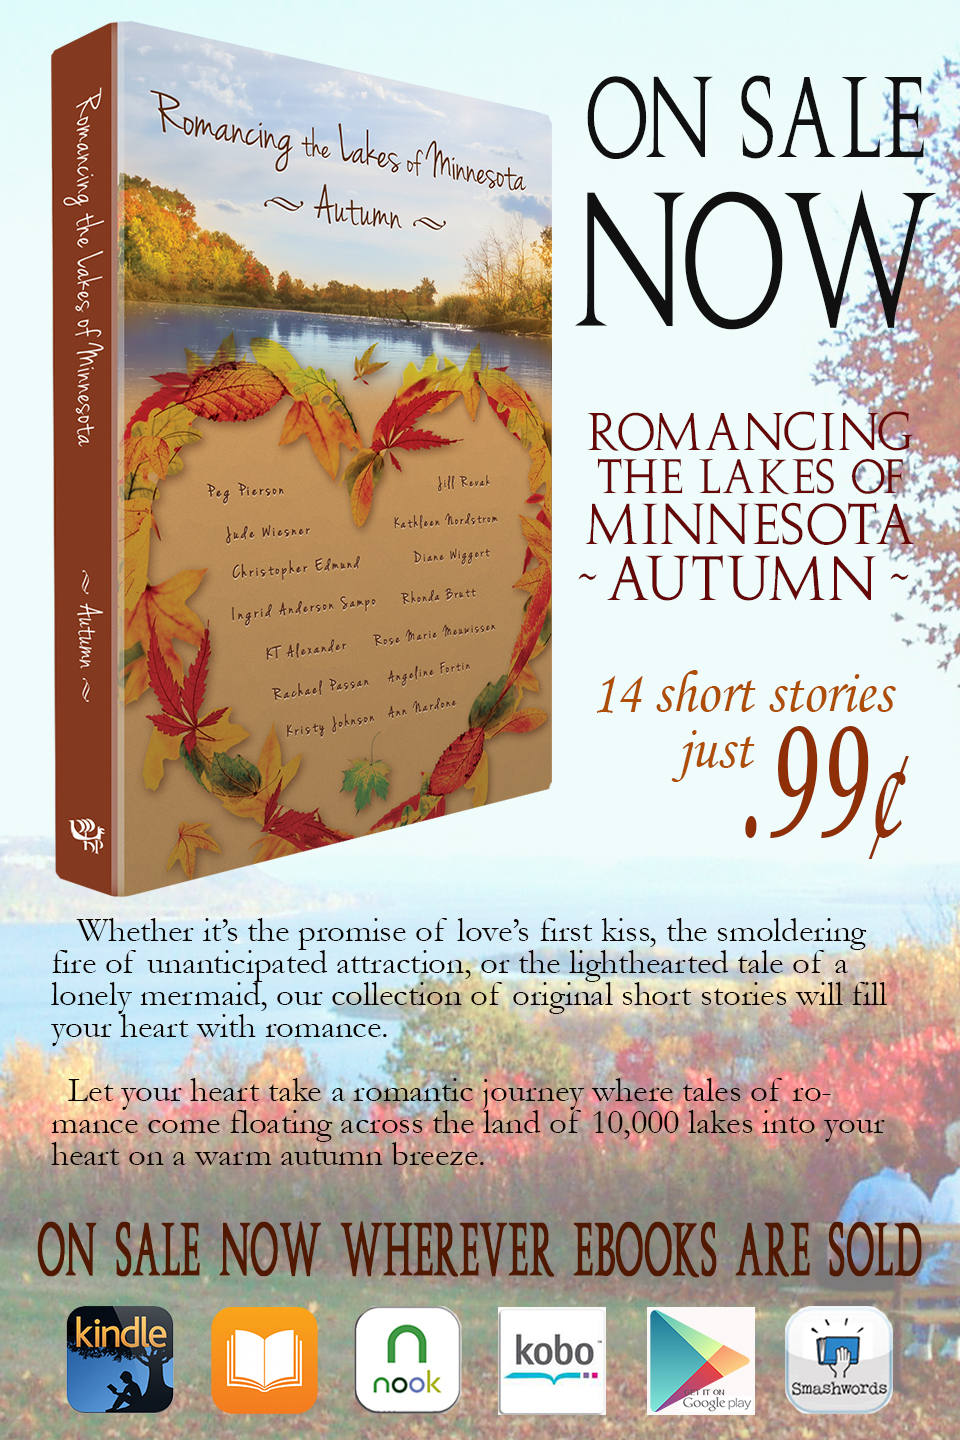 """Read our anthology, Romancing the Lakes of Minnesota—Autumn, and get carried away on the gentle winds of autumn in Minnesota filled with stories of romance set on Minnesota's lakes and experience the unique voices from our Minnesota author's imaginations."" -Minnesota Lakes Writers"